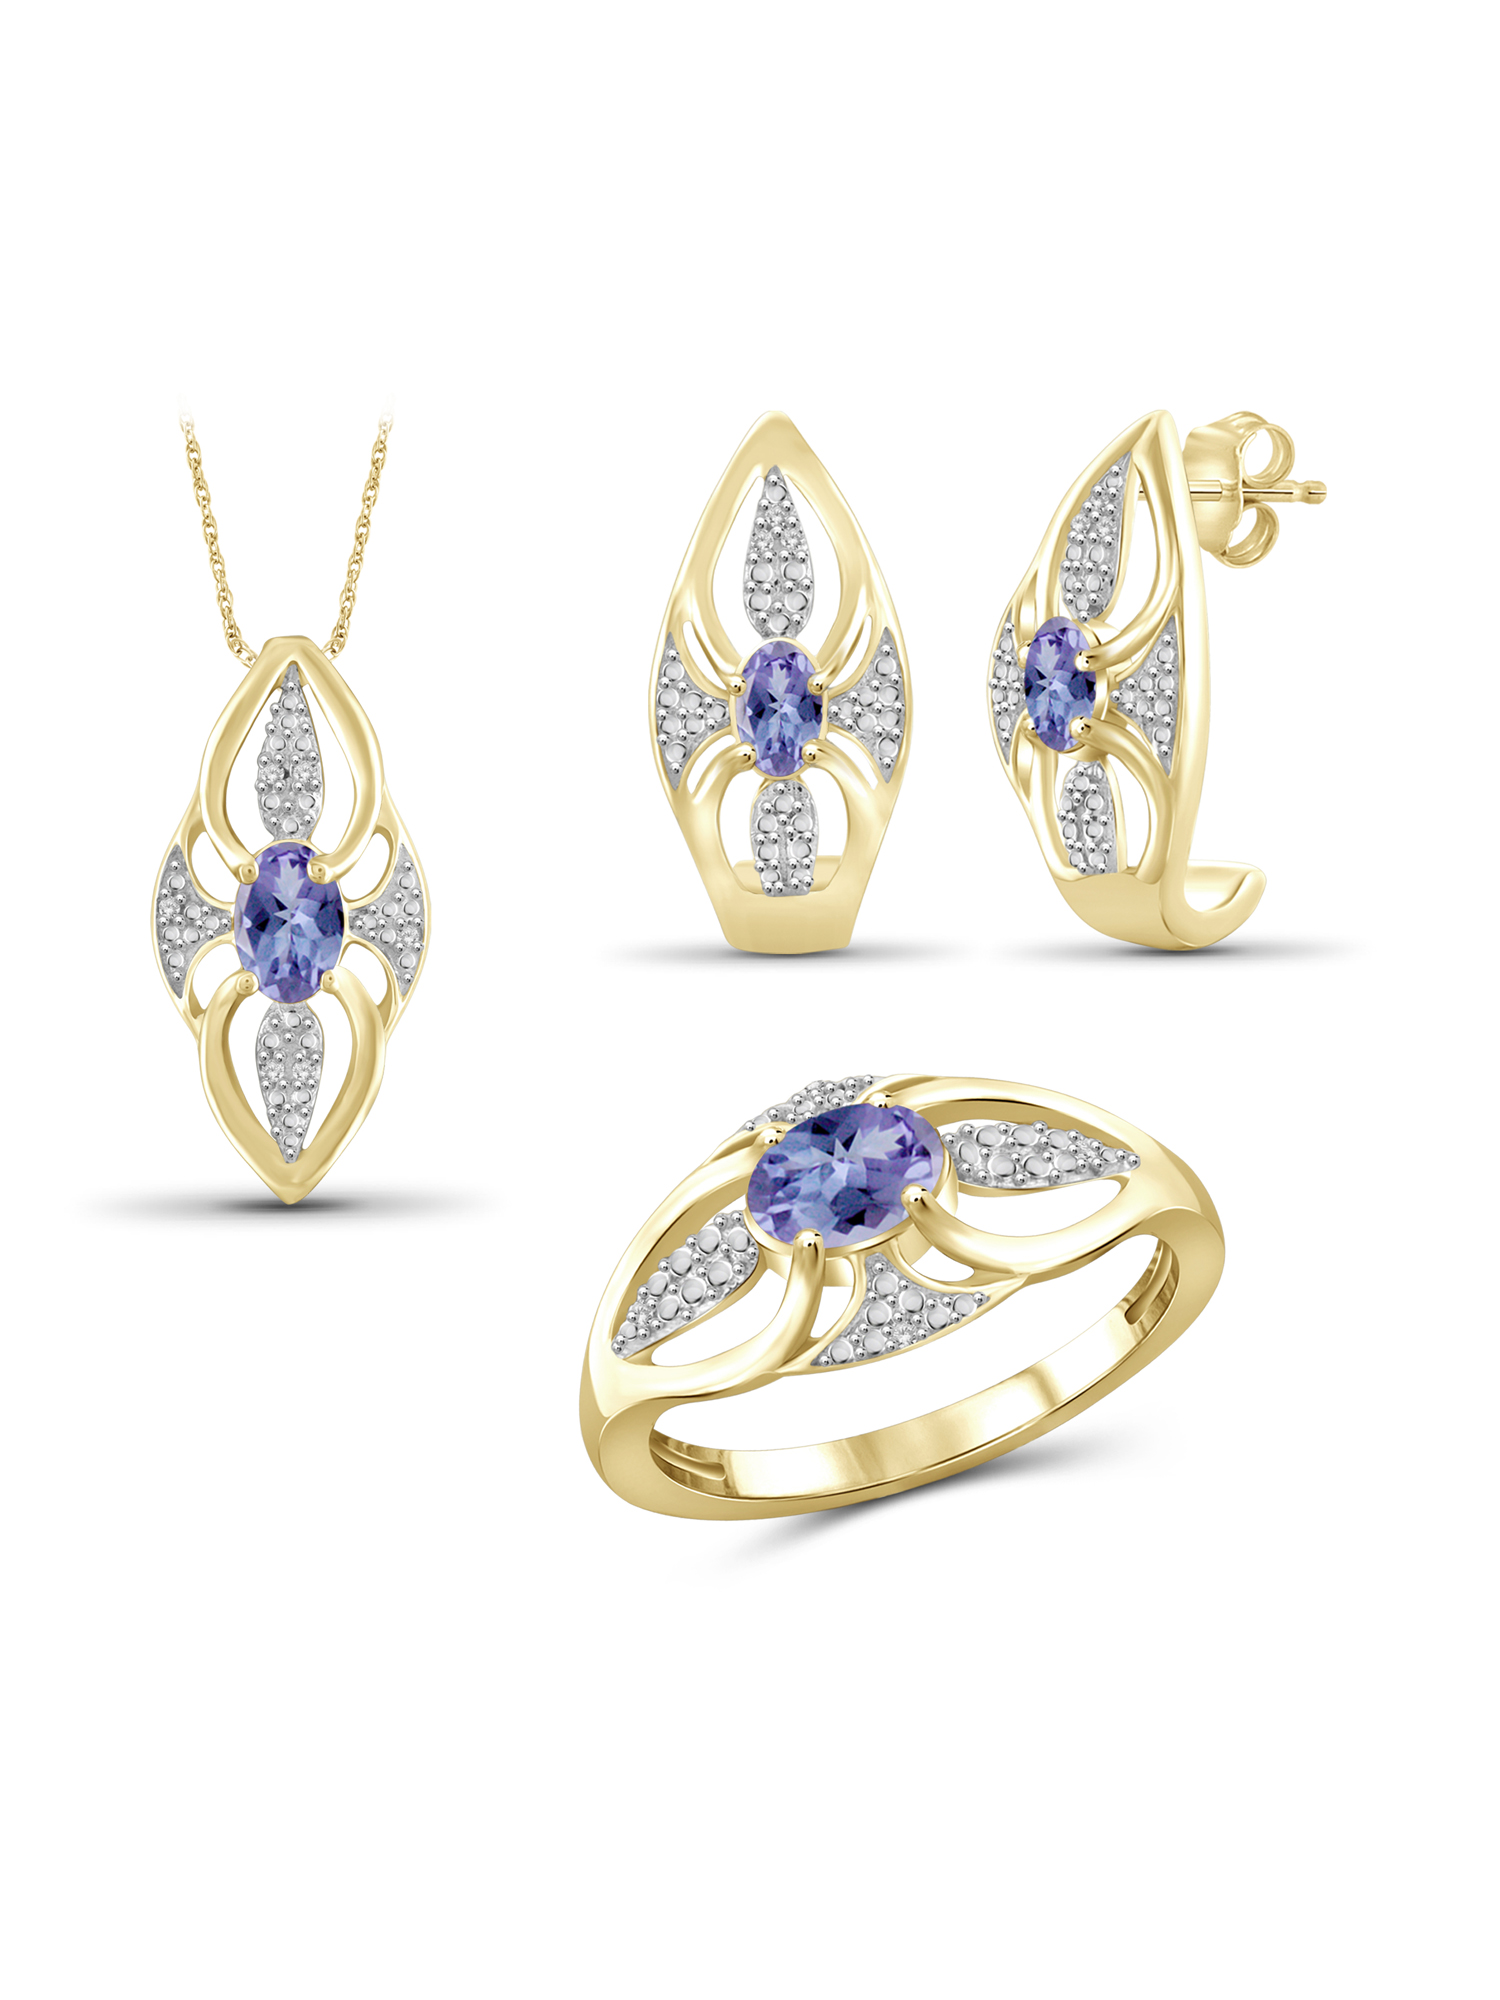 1 1/3 Carat T.G.W. Tanzanite And White Diamond Accent 14k Gold Over Silver 3-Piece Jewelry set